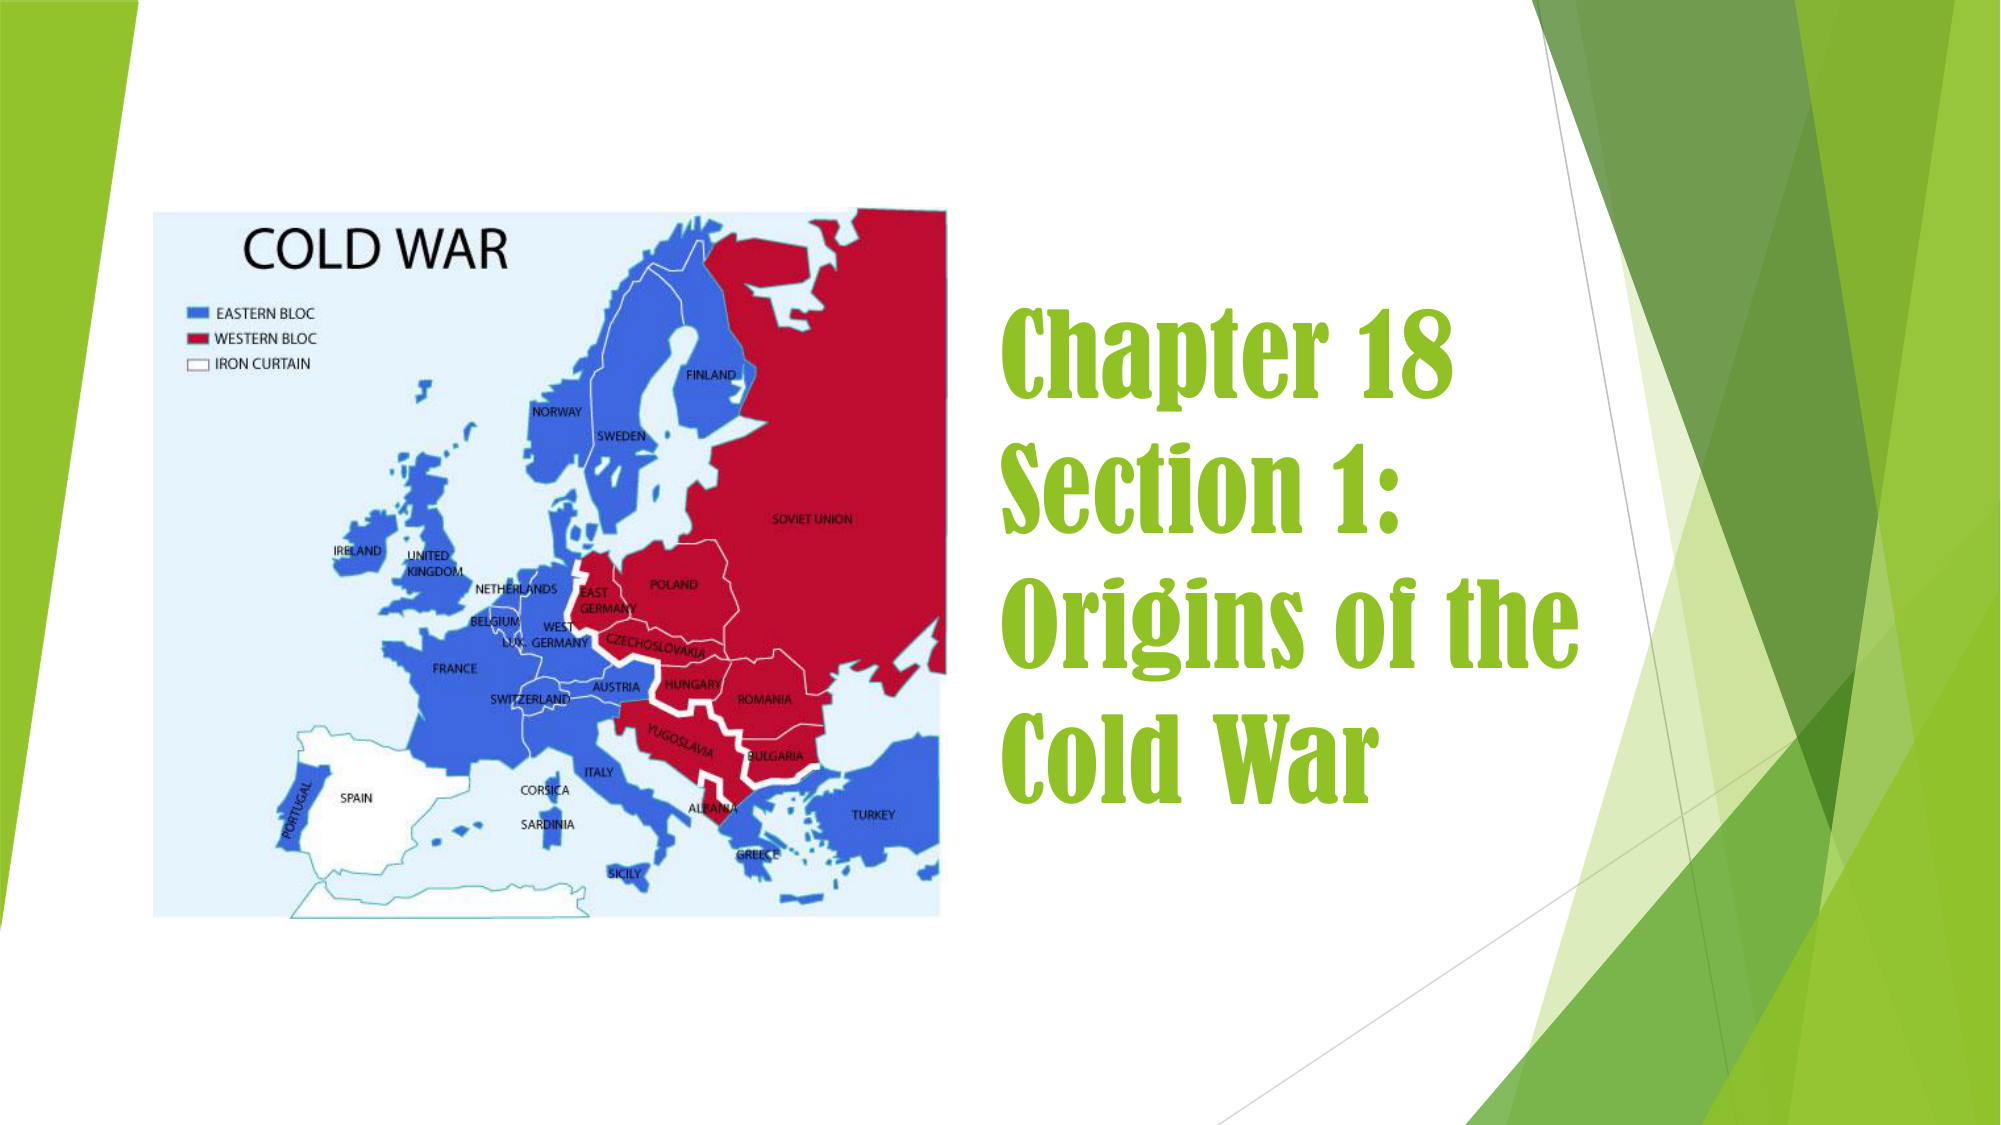 Bestseller Chapter 18 Section 1 Cold War Worksheet